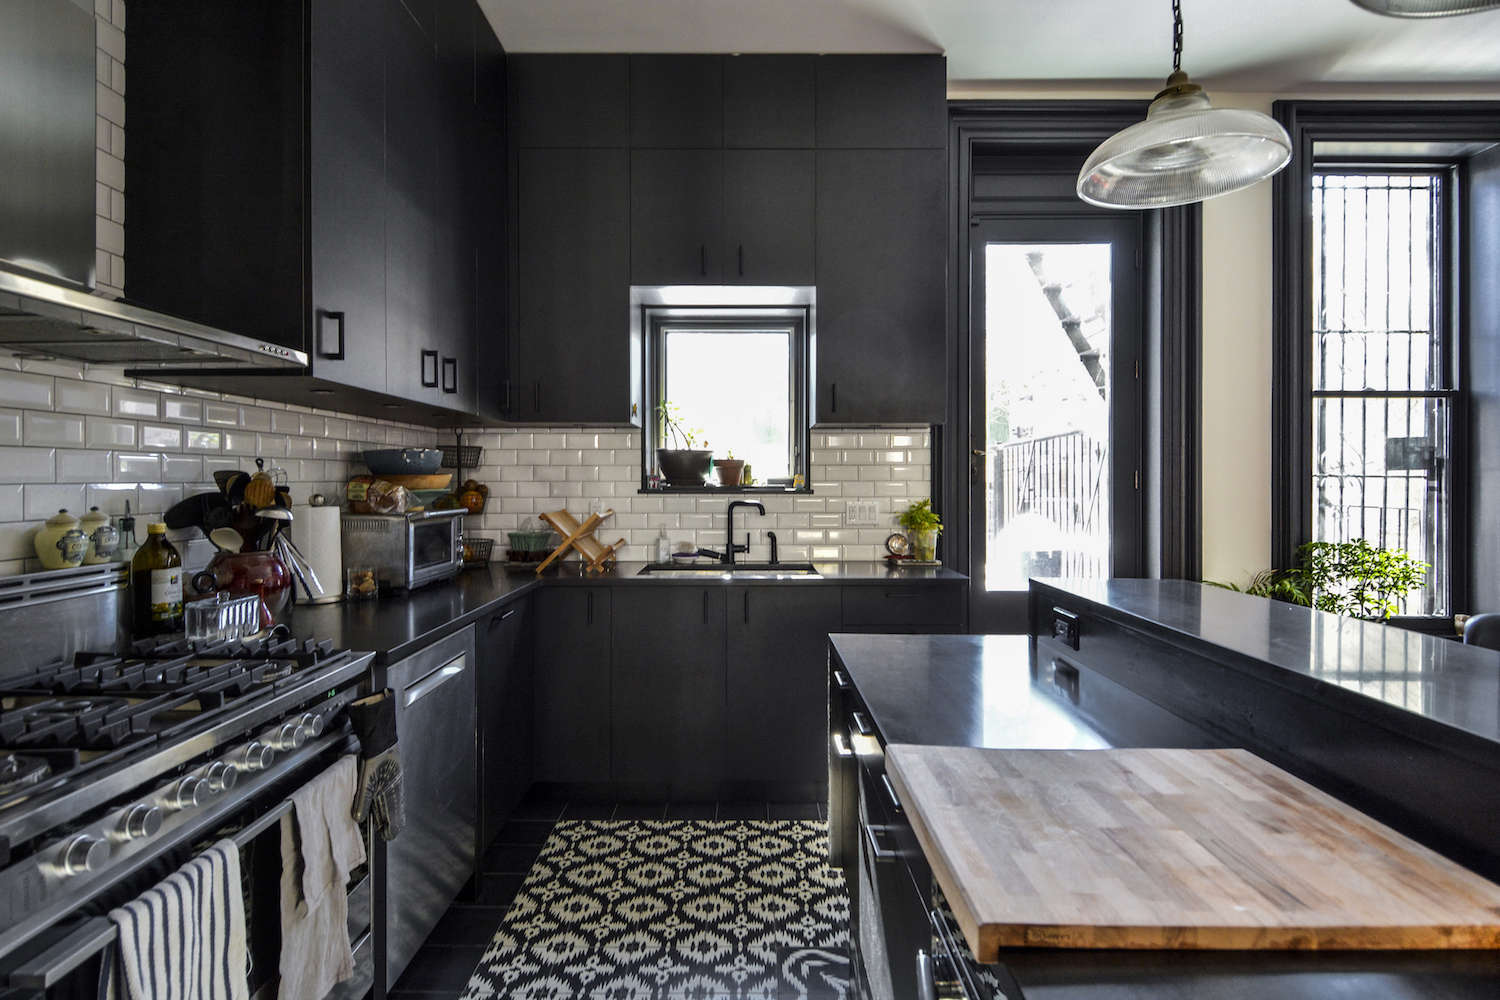 architects gregory merkel and catalina rojas's remodeled brooklyn townhouse | r 12